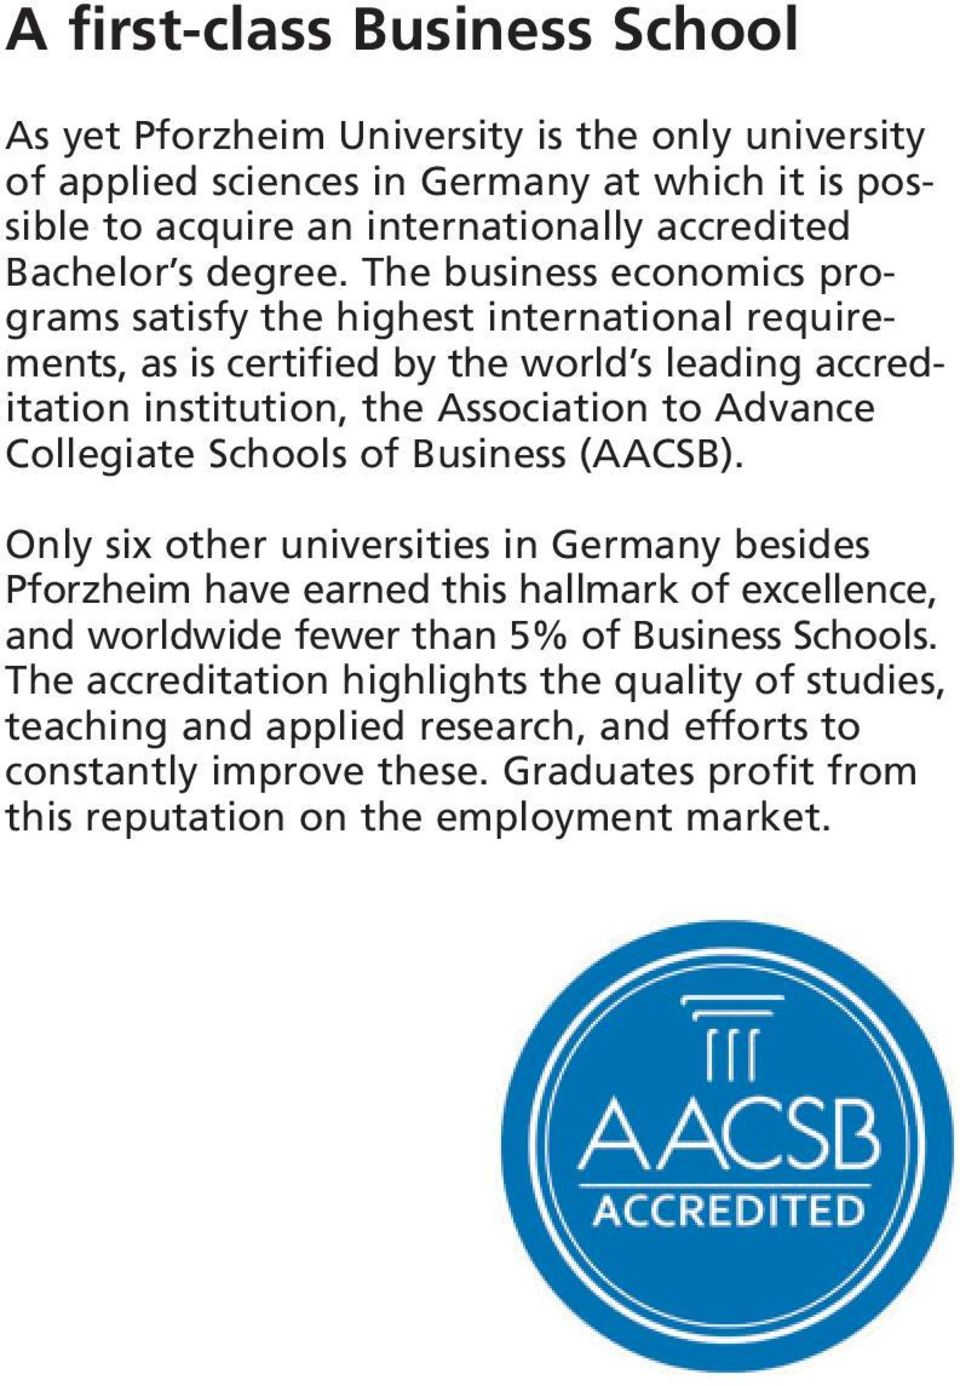 The business economics programs satisfy the highest international requirements, as is certified by the world s leading accreditation institution, the Association to Advance Collegiate